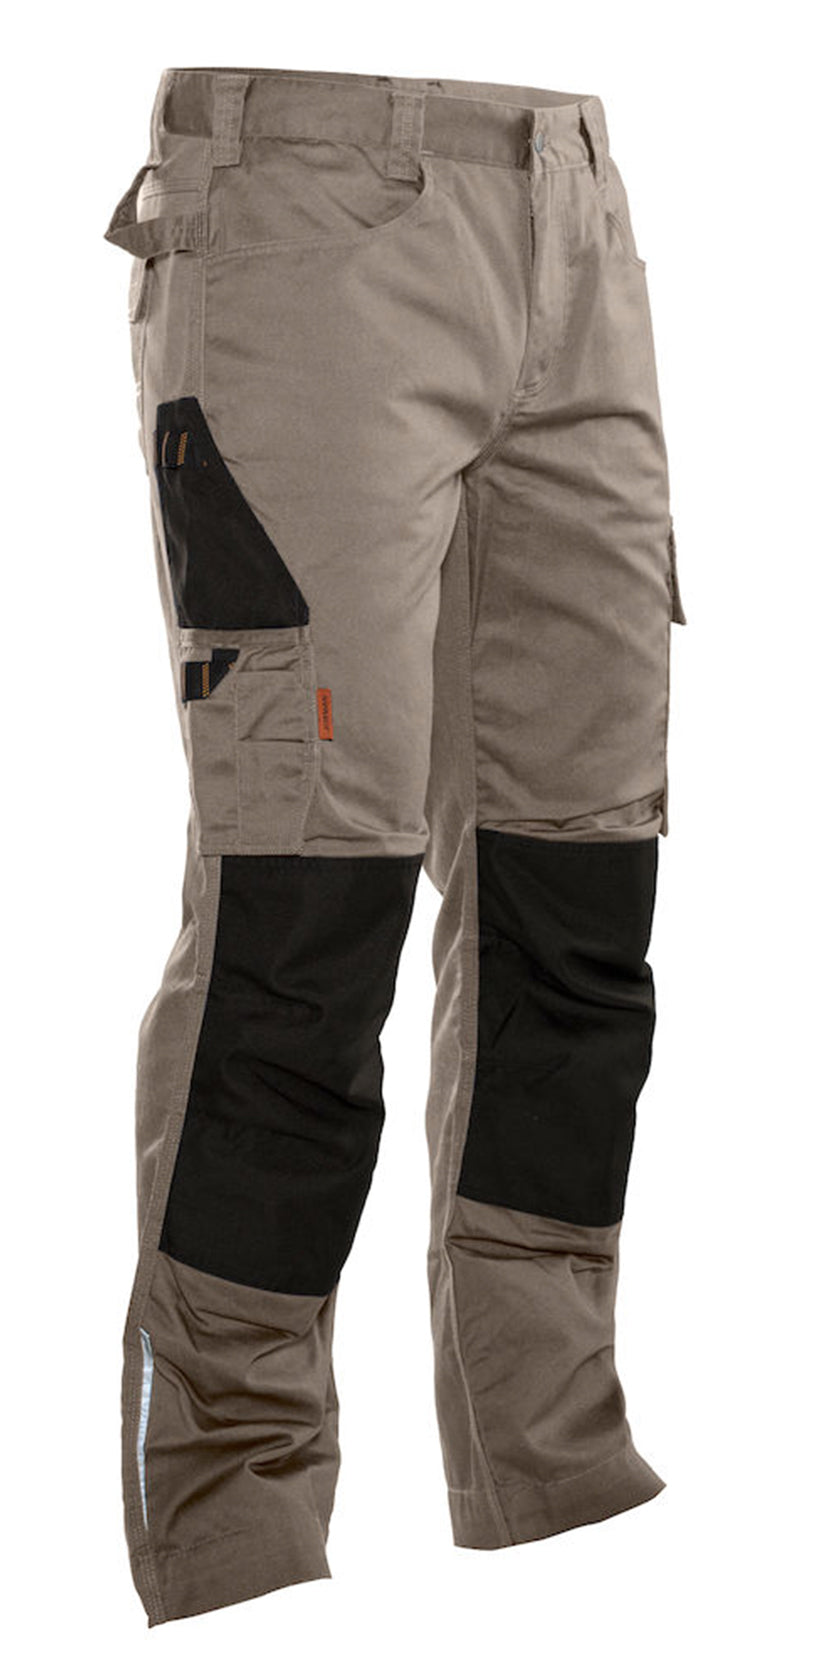 Practical Service Trousers